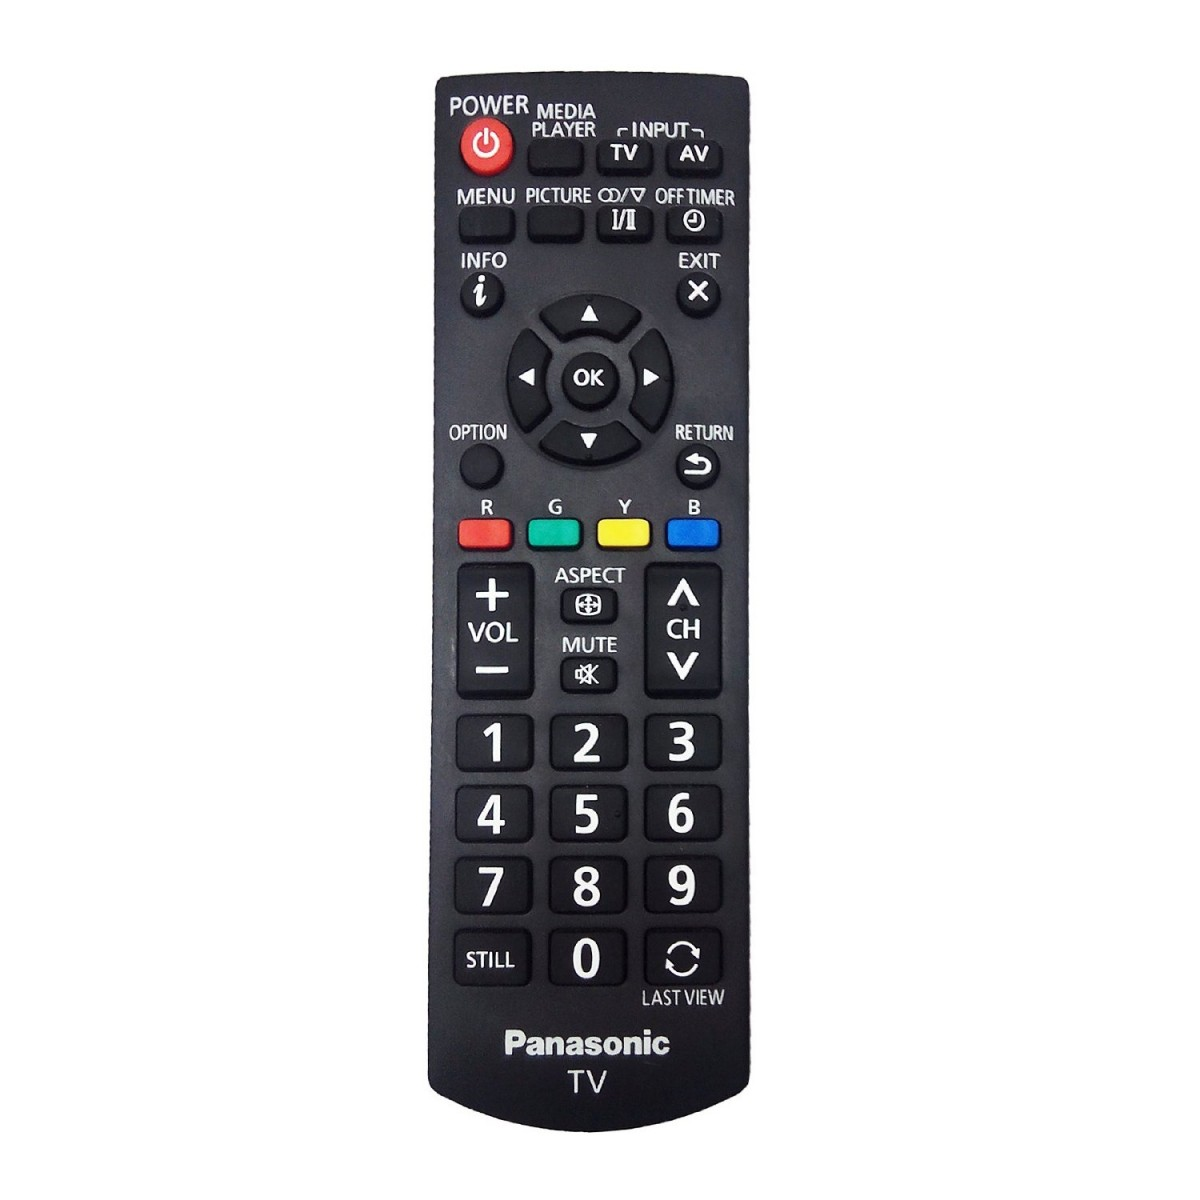 New OEM Replacement Panasonic Plasma TV Remote Control